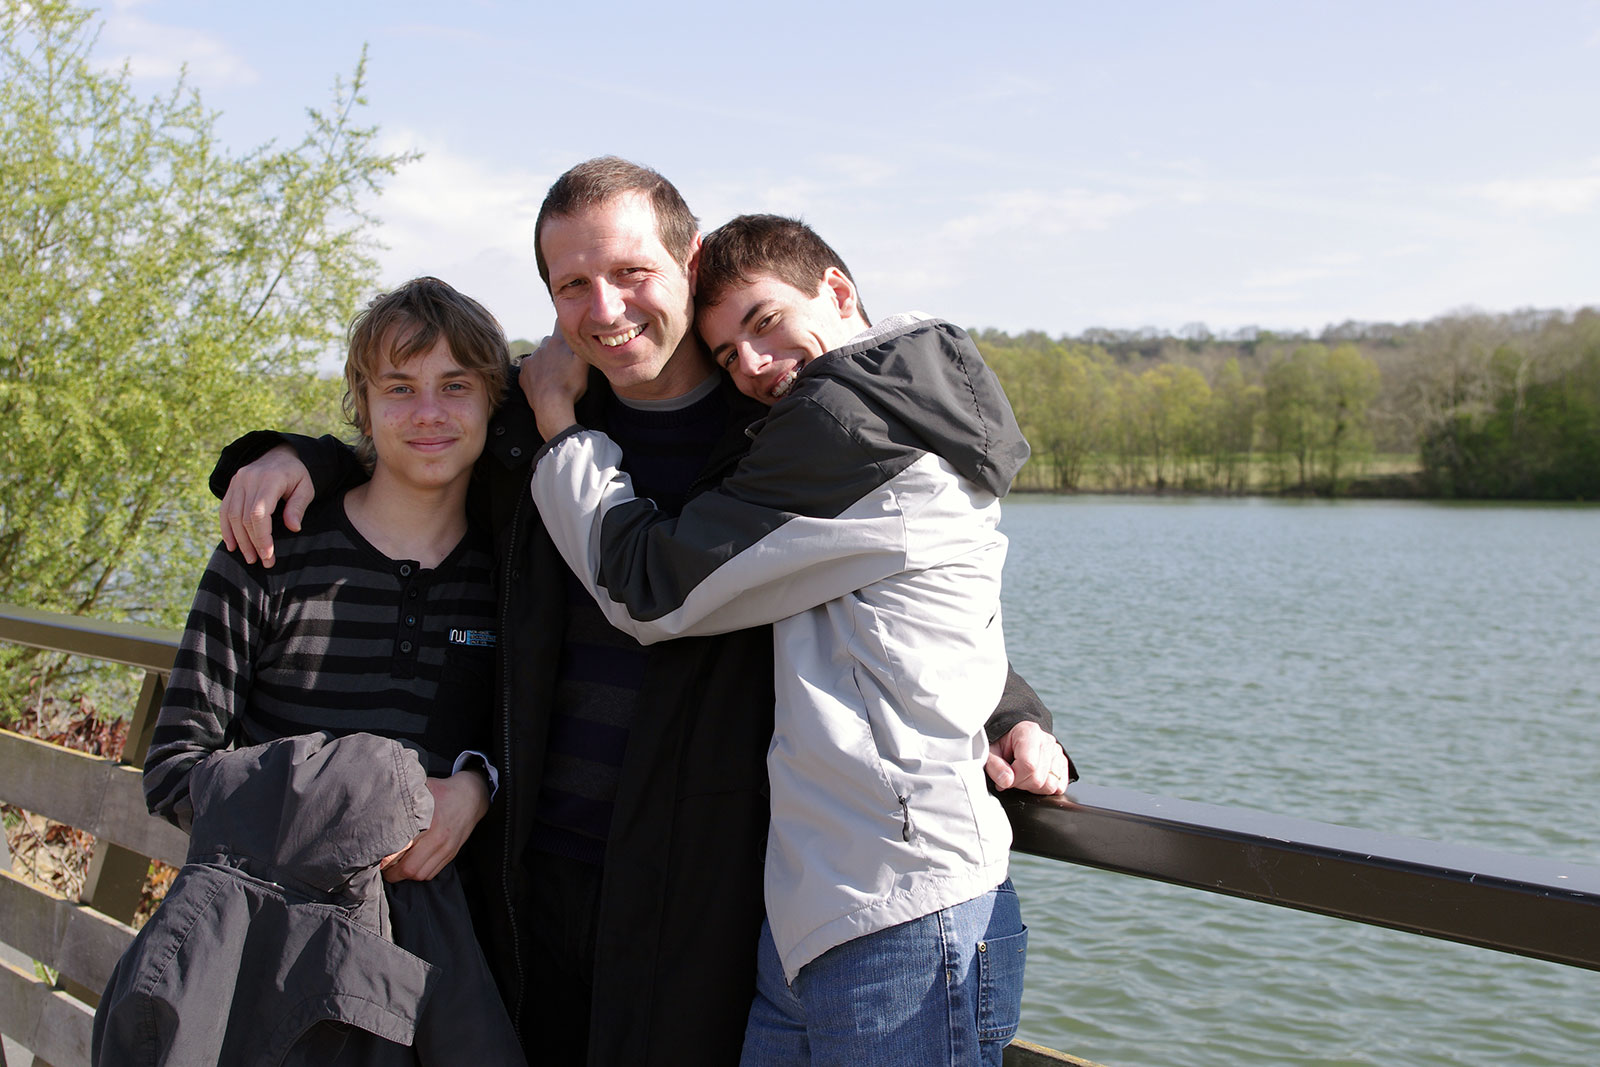 A smiling father with his arm around his two sons on a bridge in a park